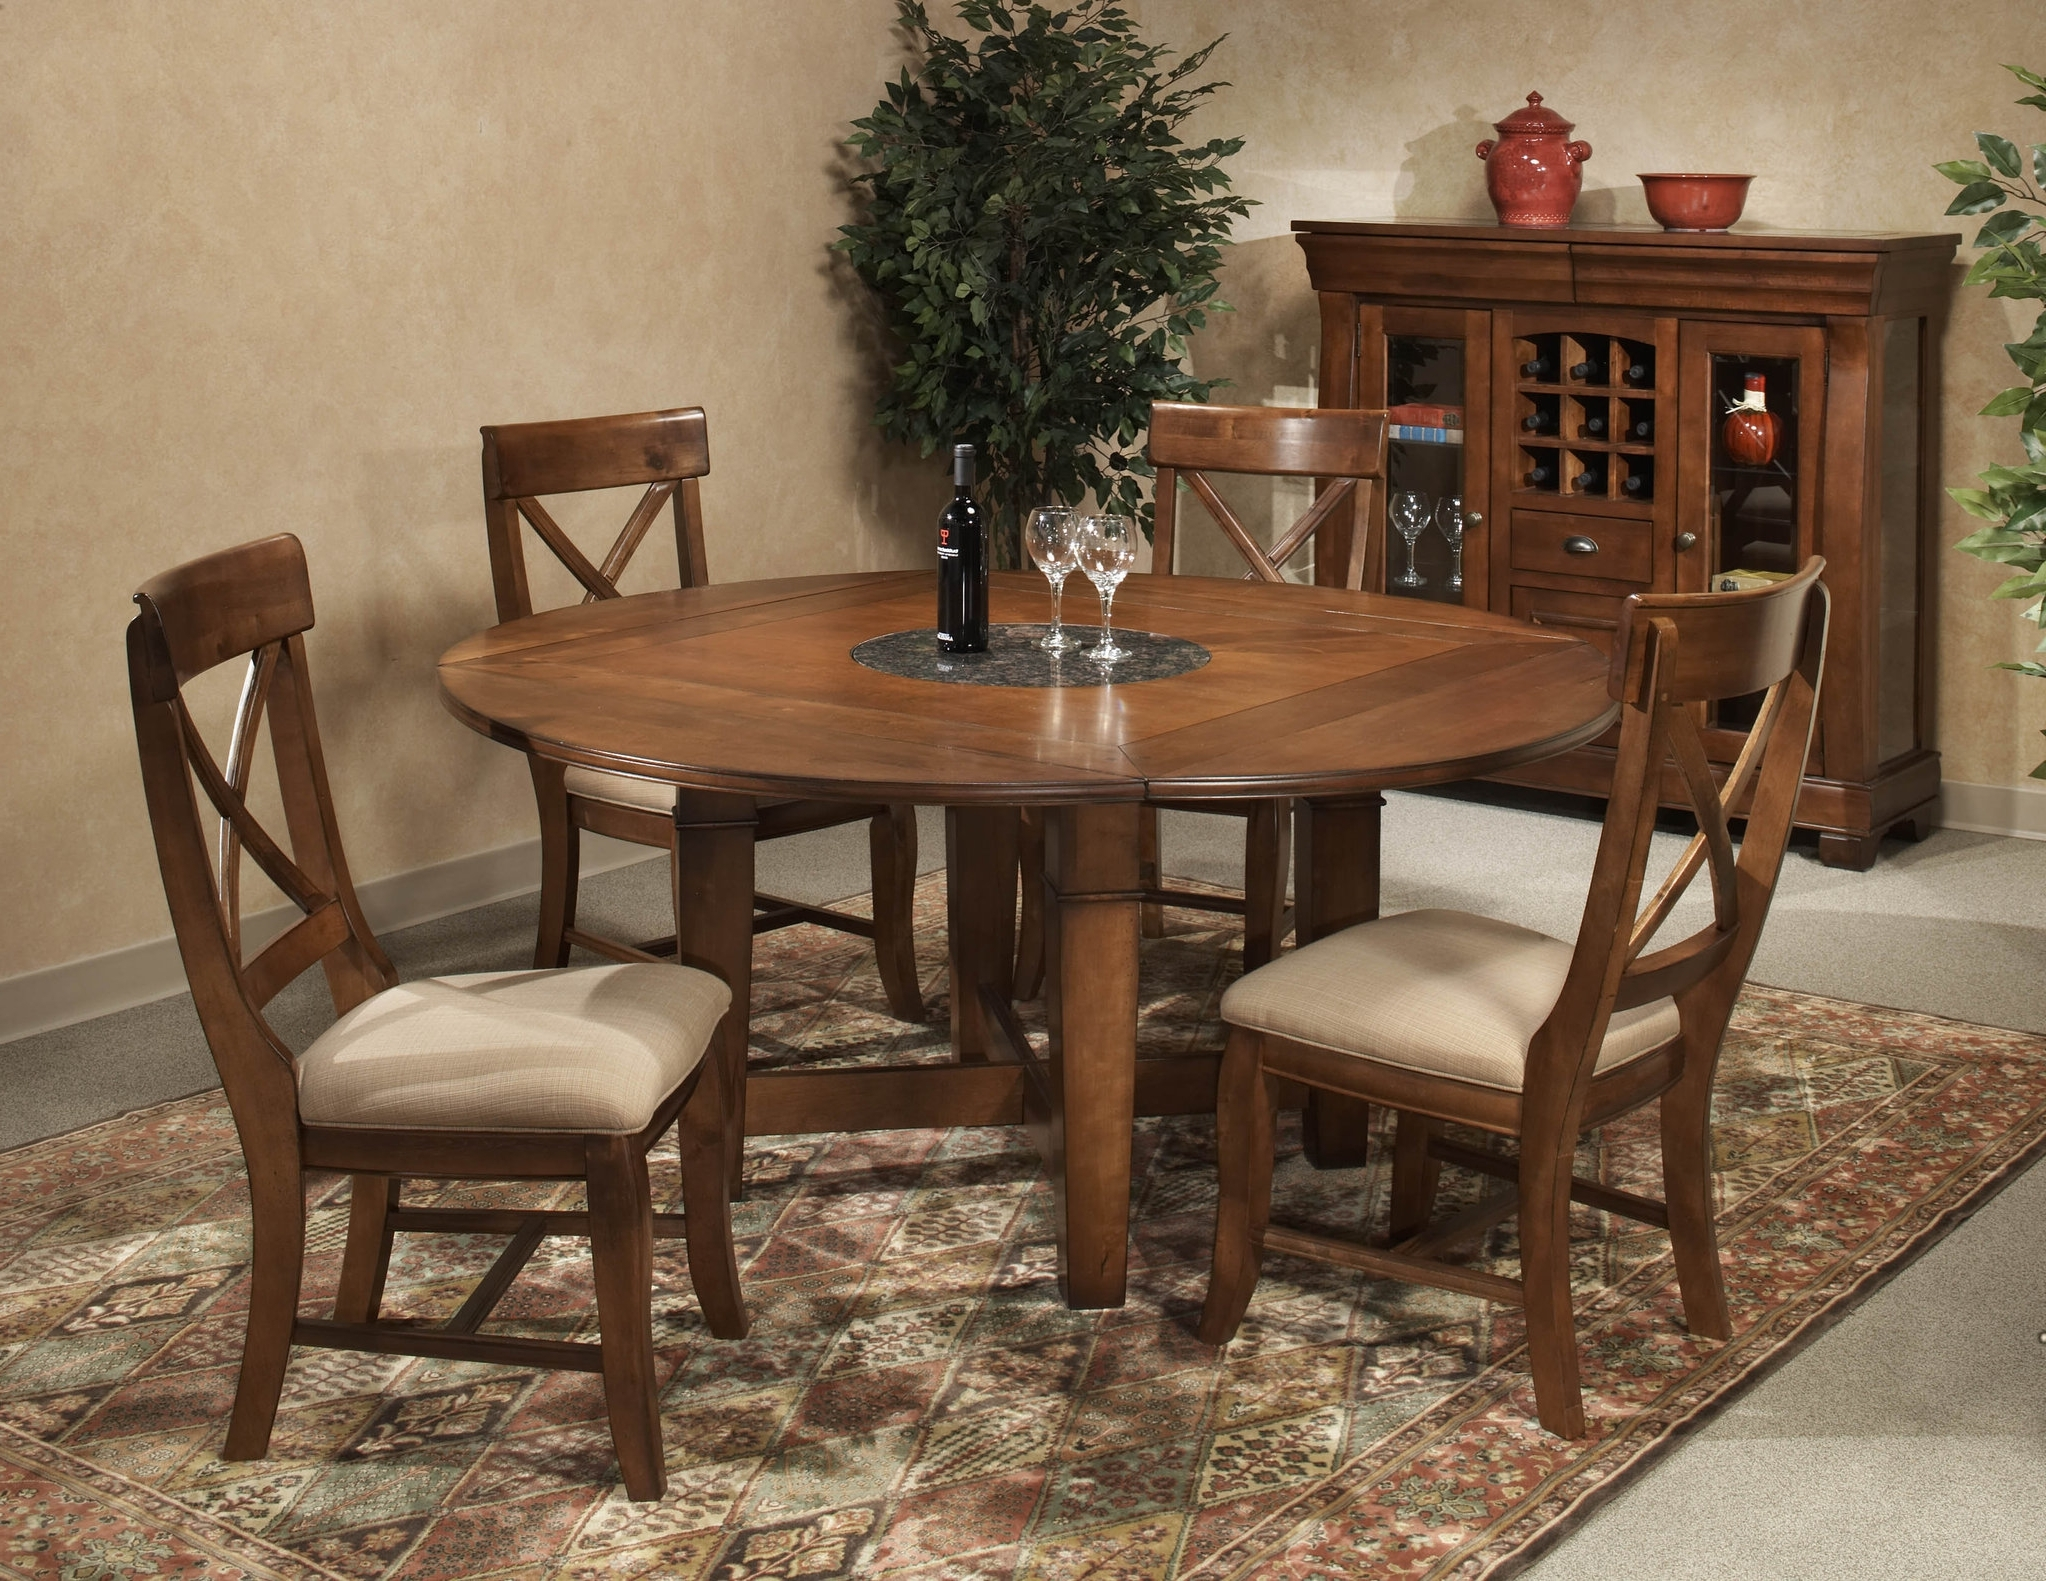 The Verona Rustic Dining Room Collection – Inside Most Up To Date Verona Dining Tables (View 15 of 25)